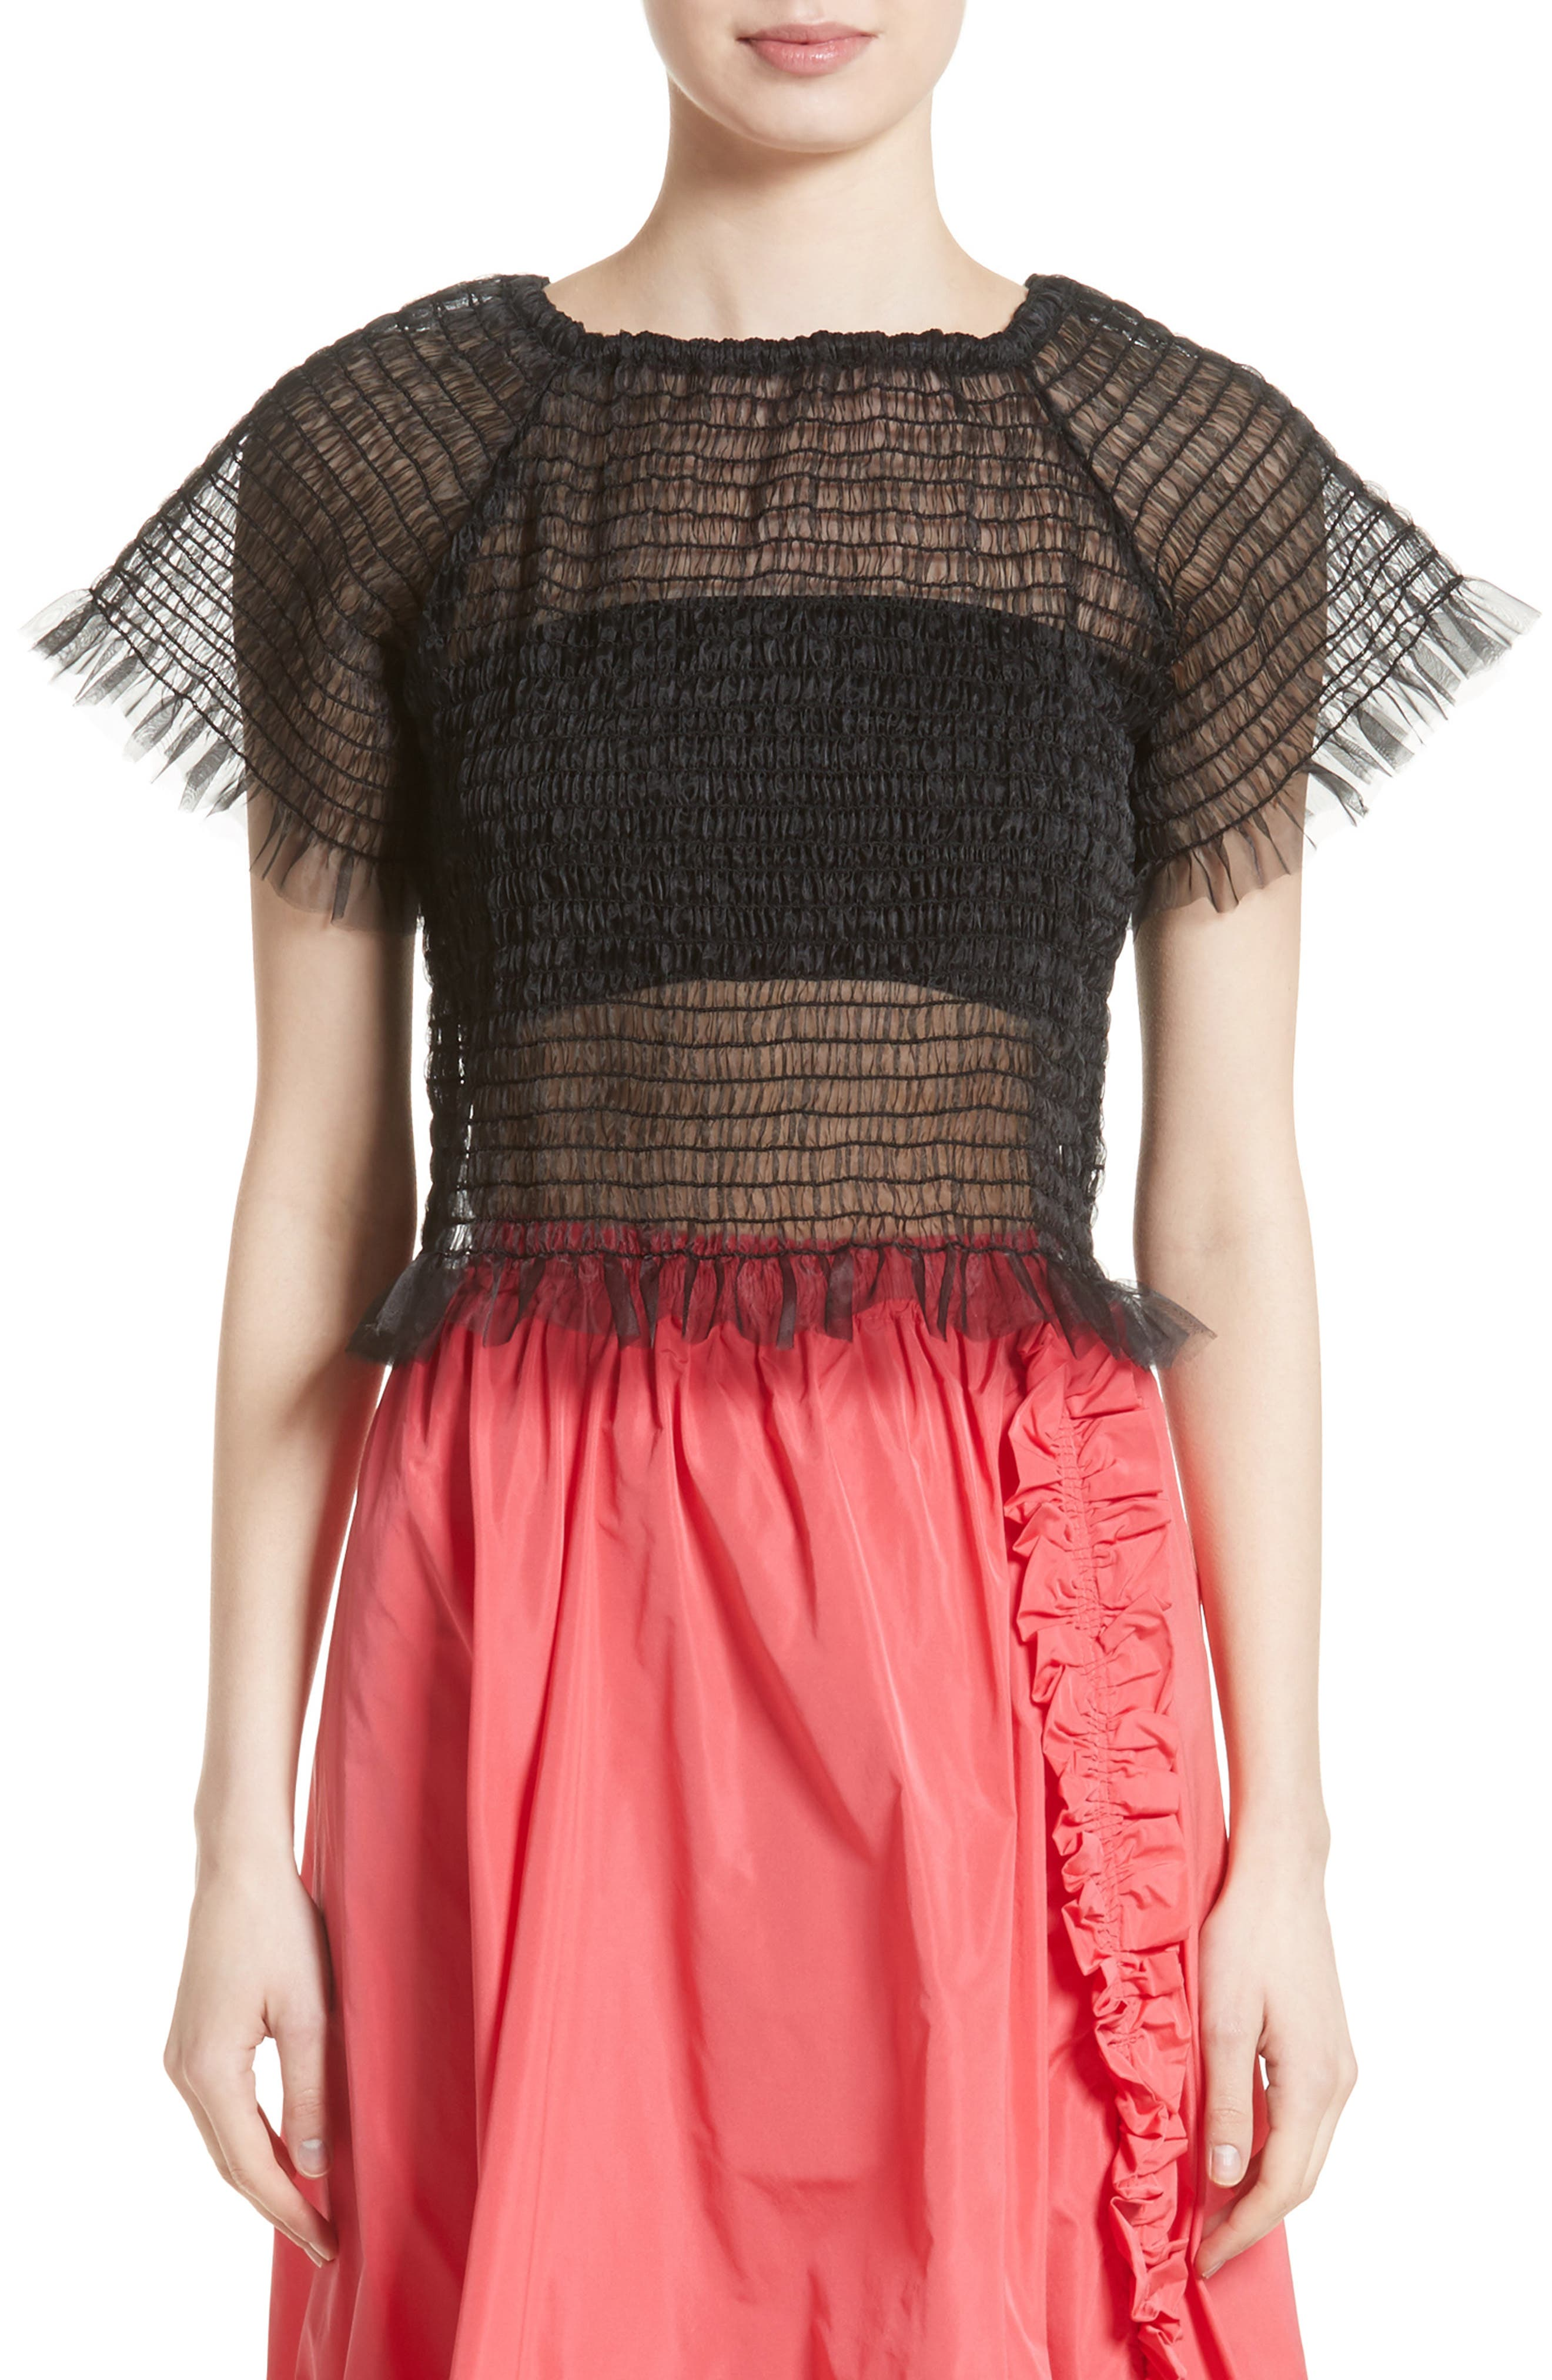 Main Image - Molly Goddard Blonde Tulle Top